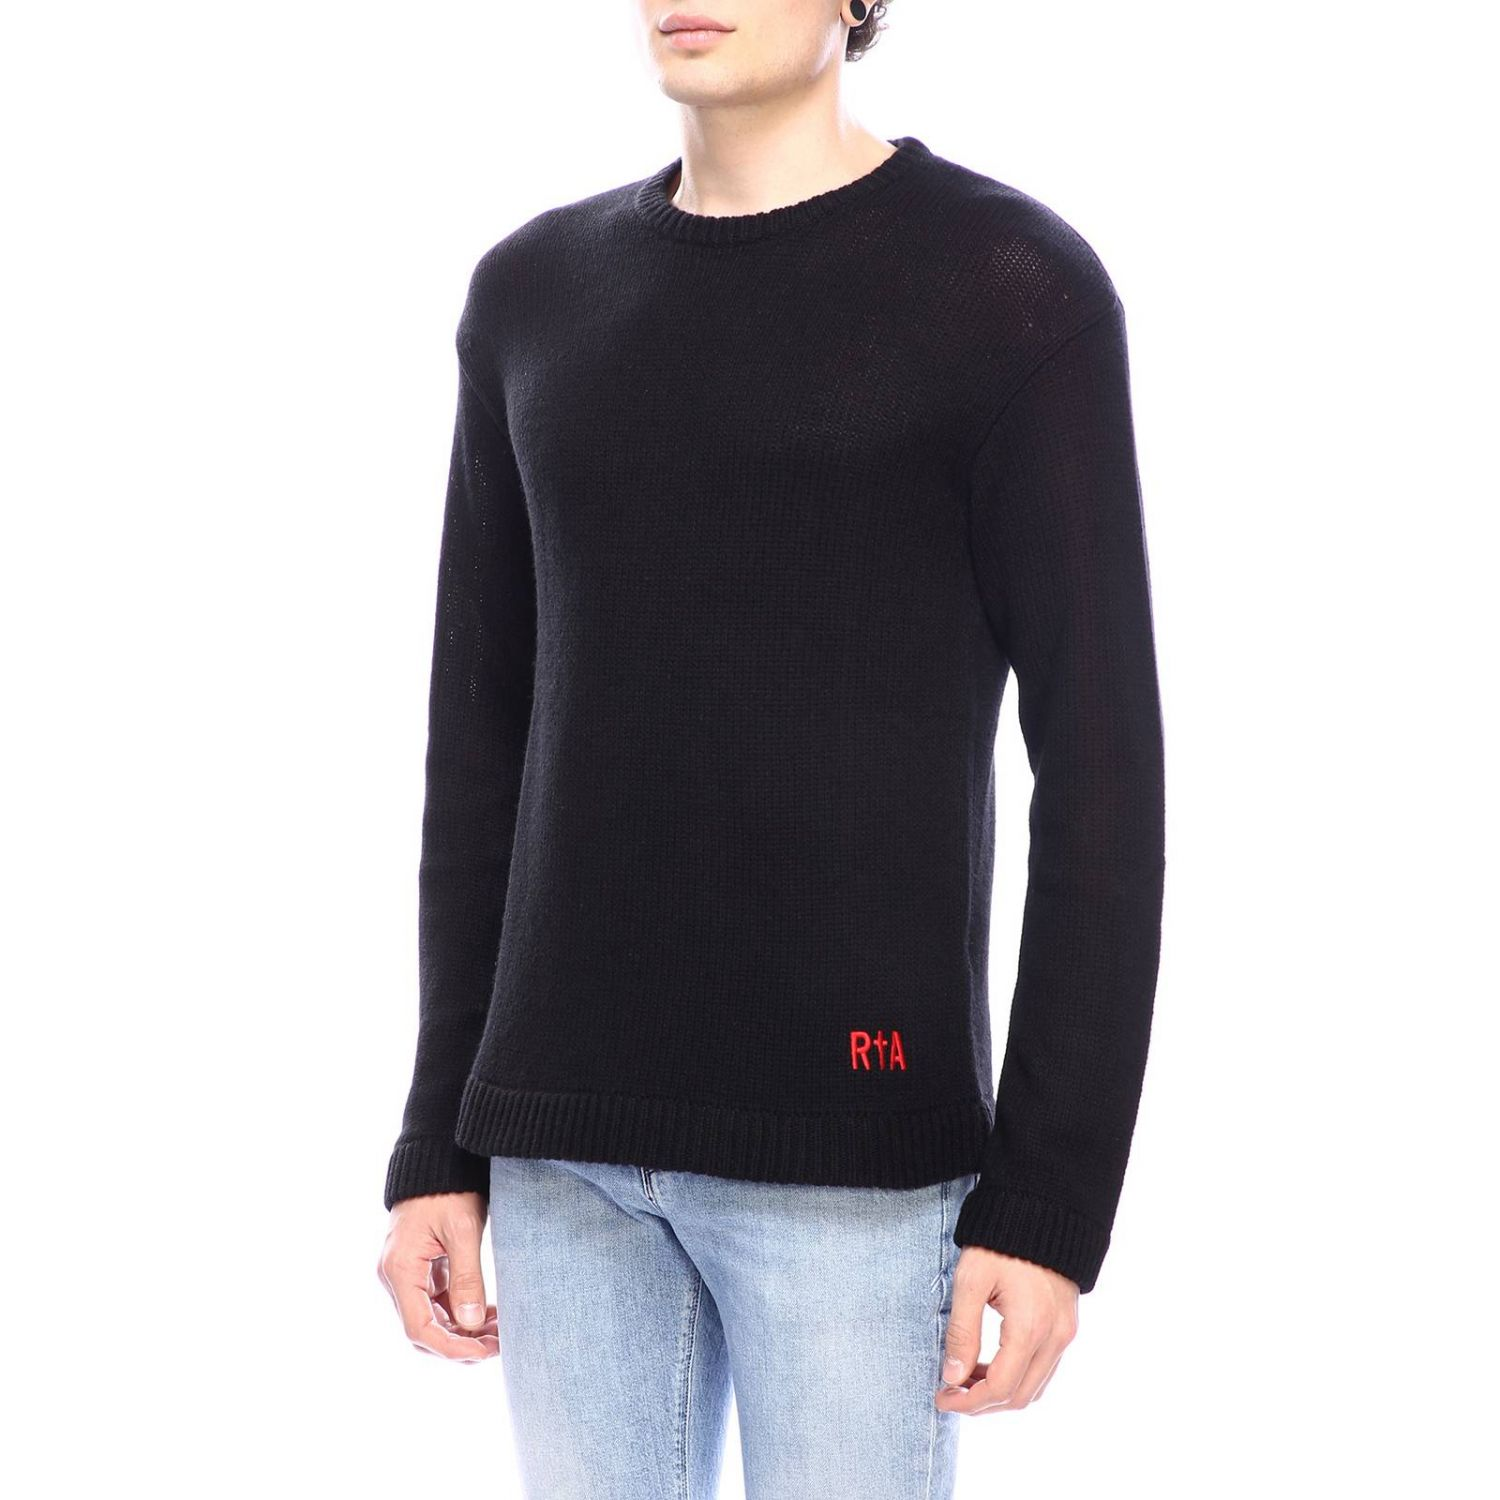 Sweater men Rta black 2